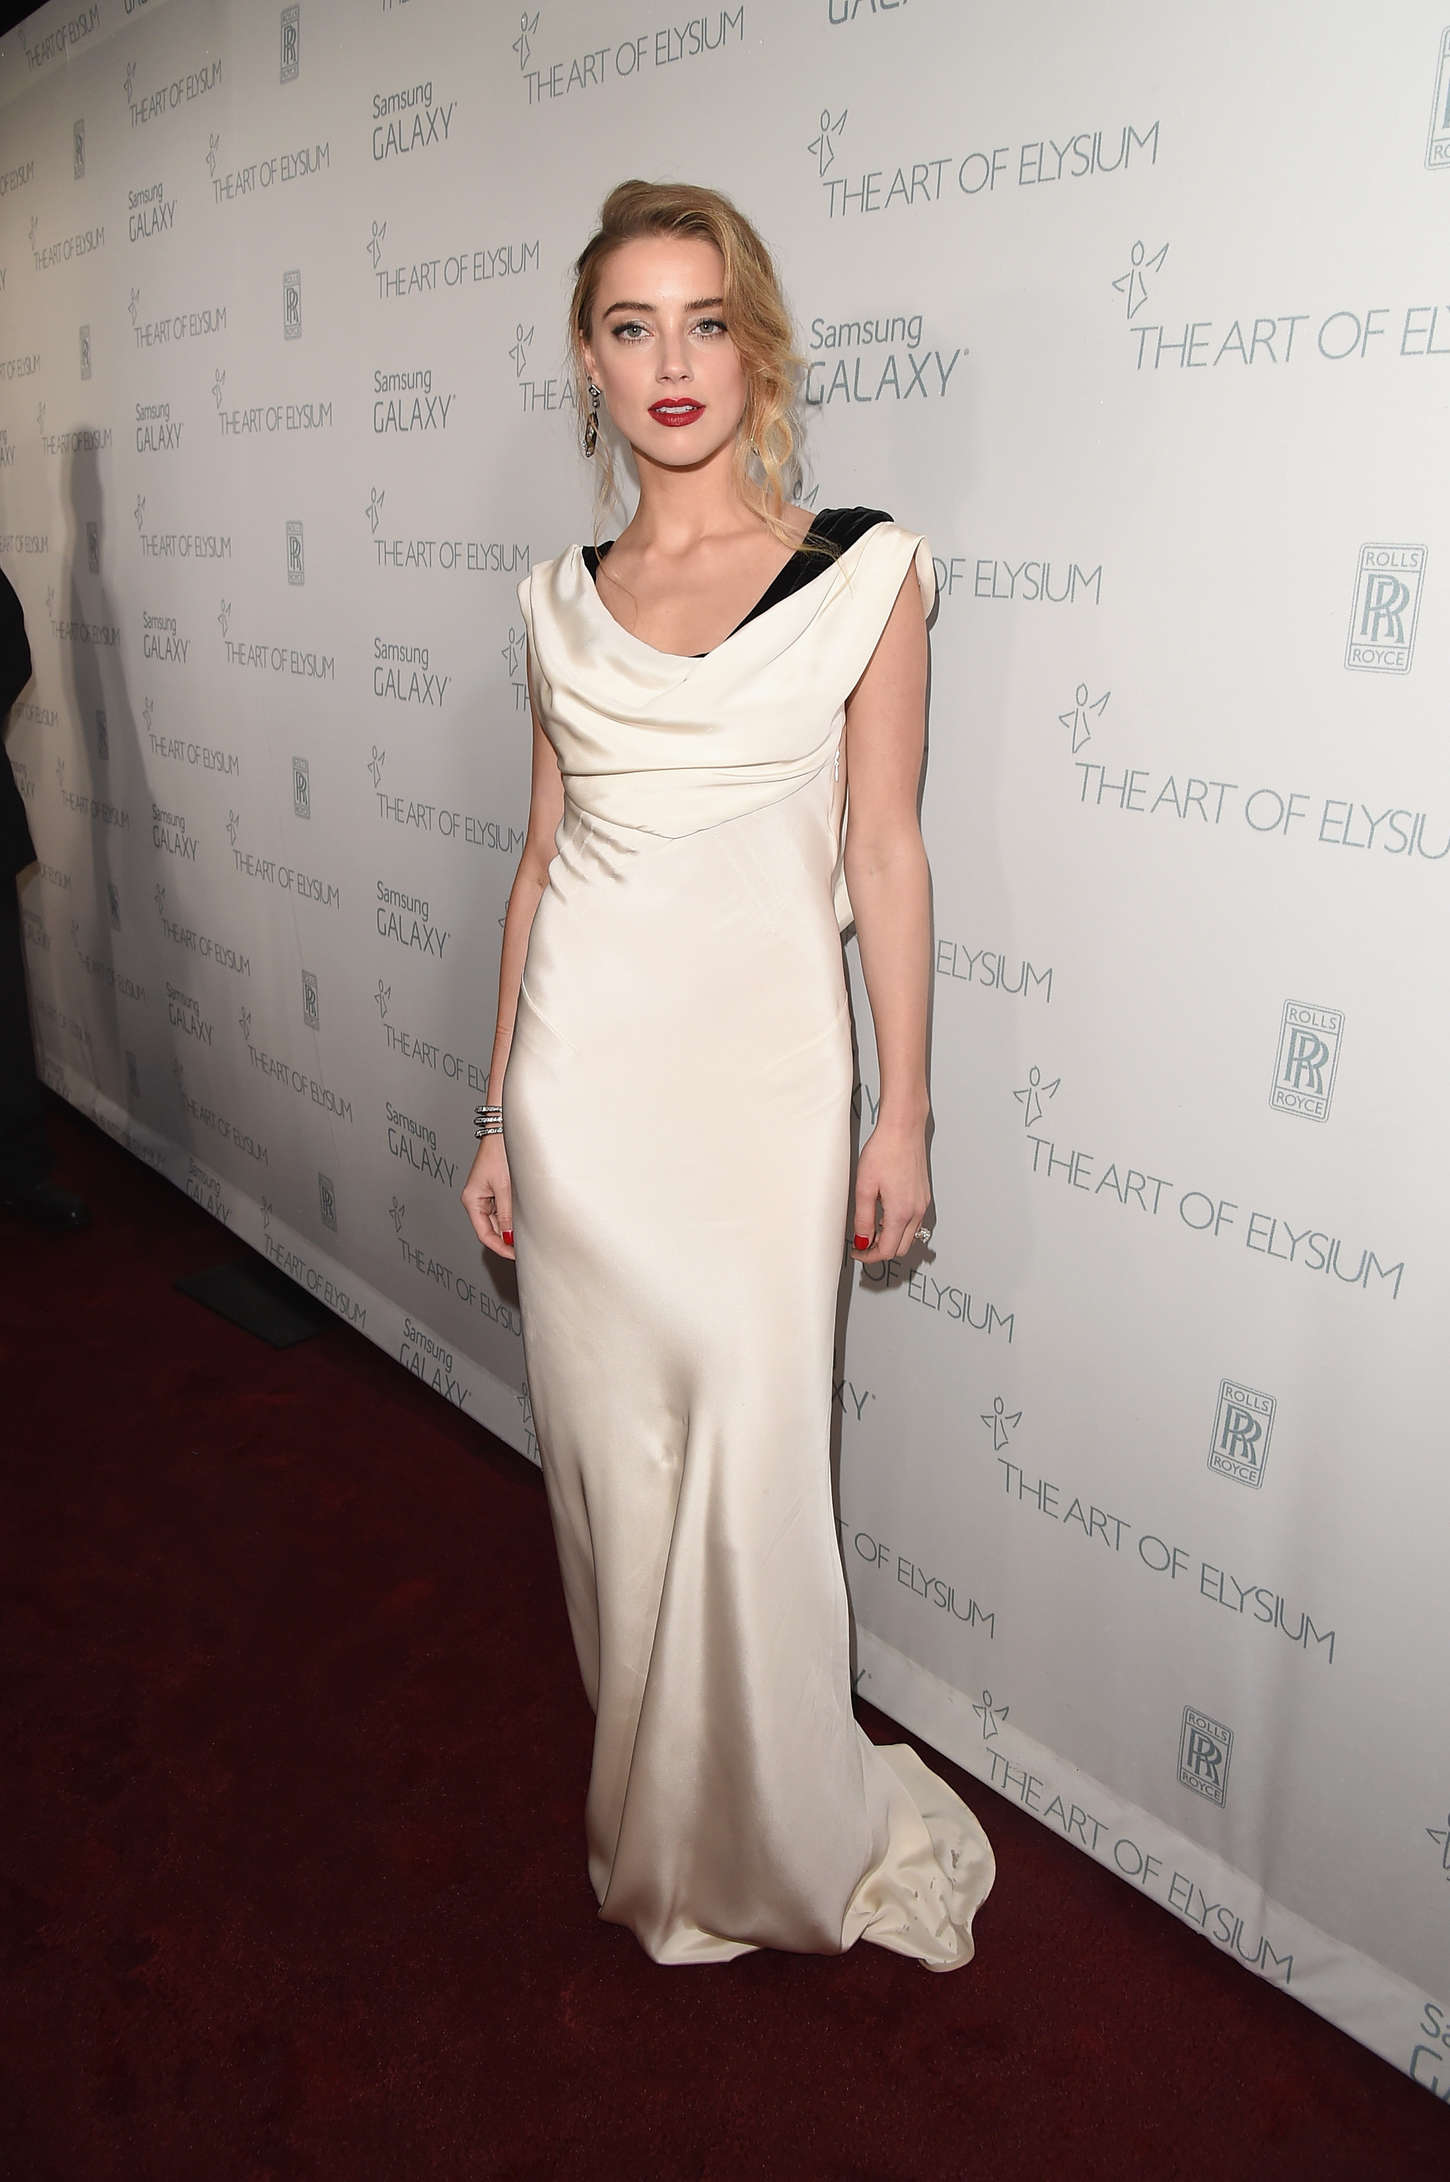 http://www.gotceleb.com/wp-content/uploads/photos/amber-heard/art-of-elysium-8th-annual-heaven-gala-in-los-angeles/Amber-Heard:-Art-Of-Elysium-Heaven-Gala-2015--18.jpg